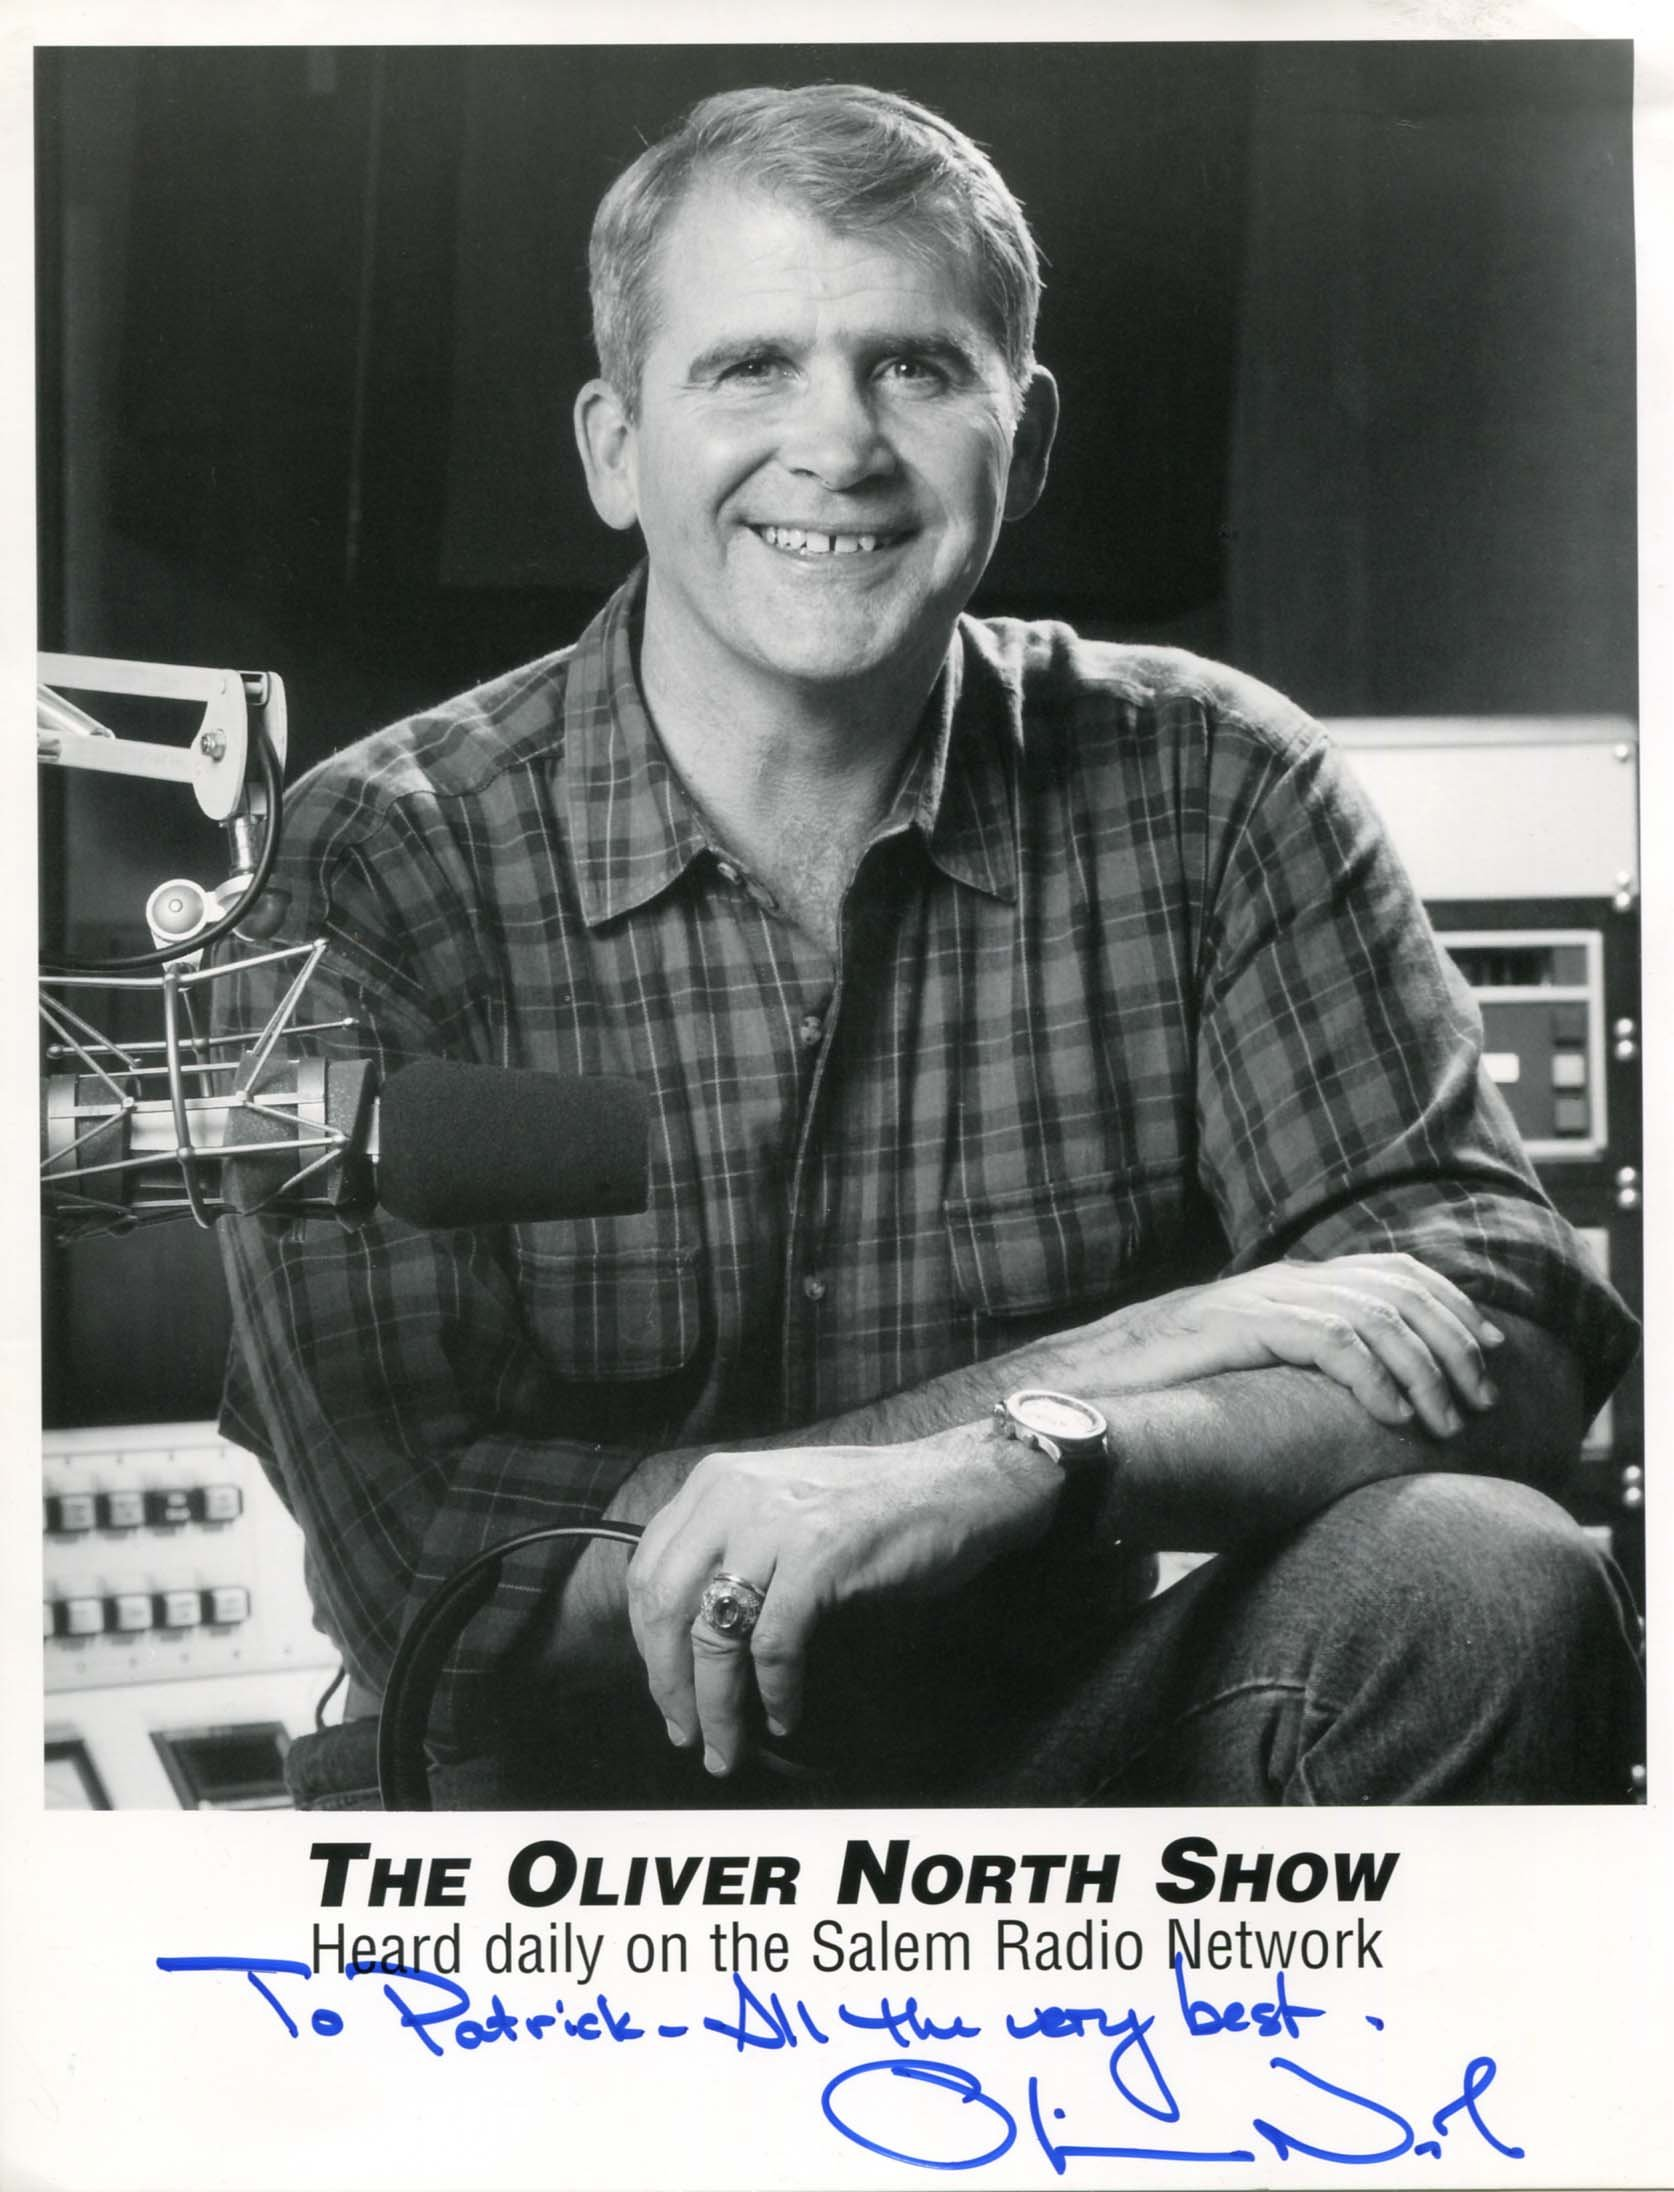 IRAN CONTRA AFFAIR Oliver North autograph, signed photo